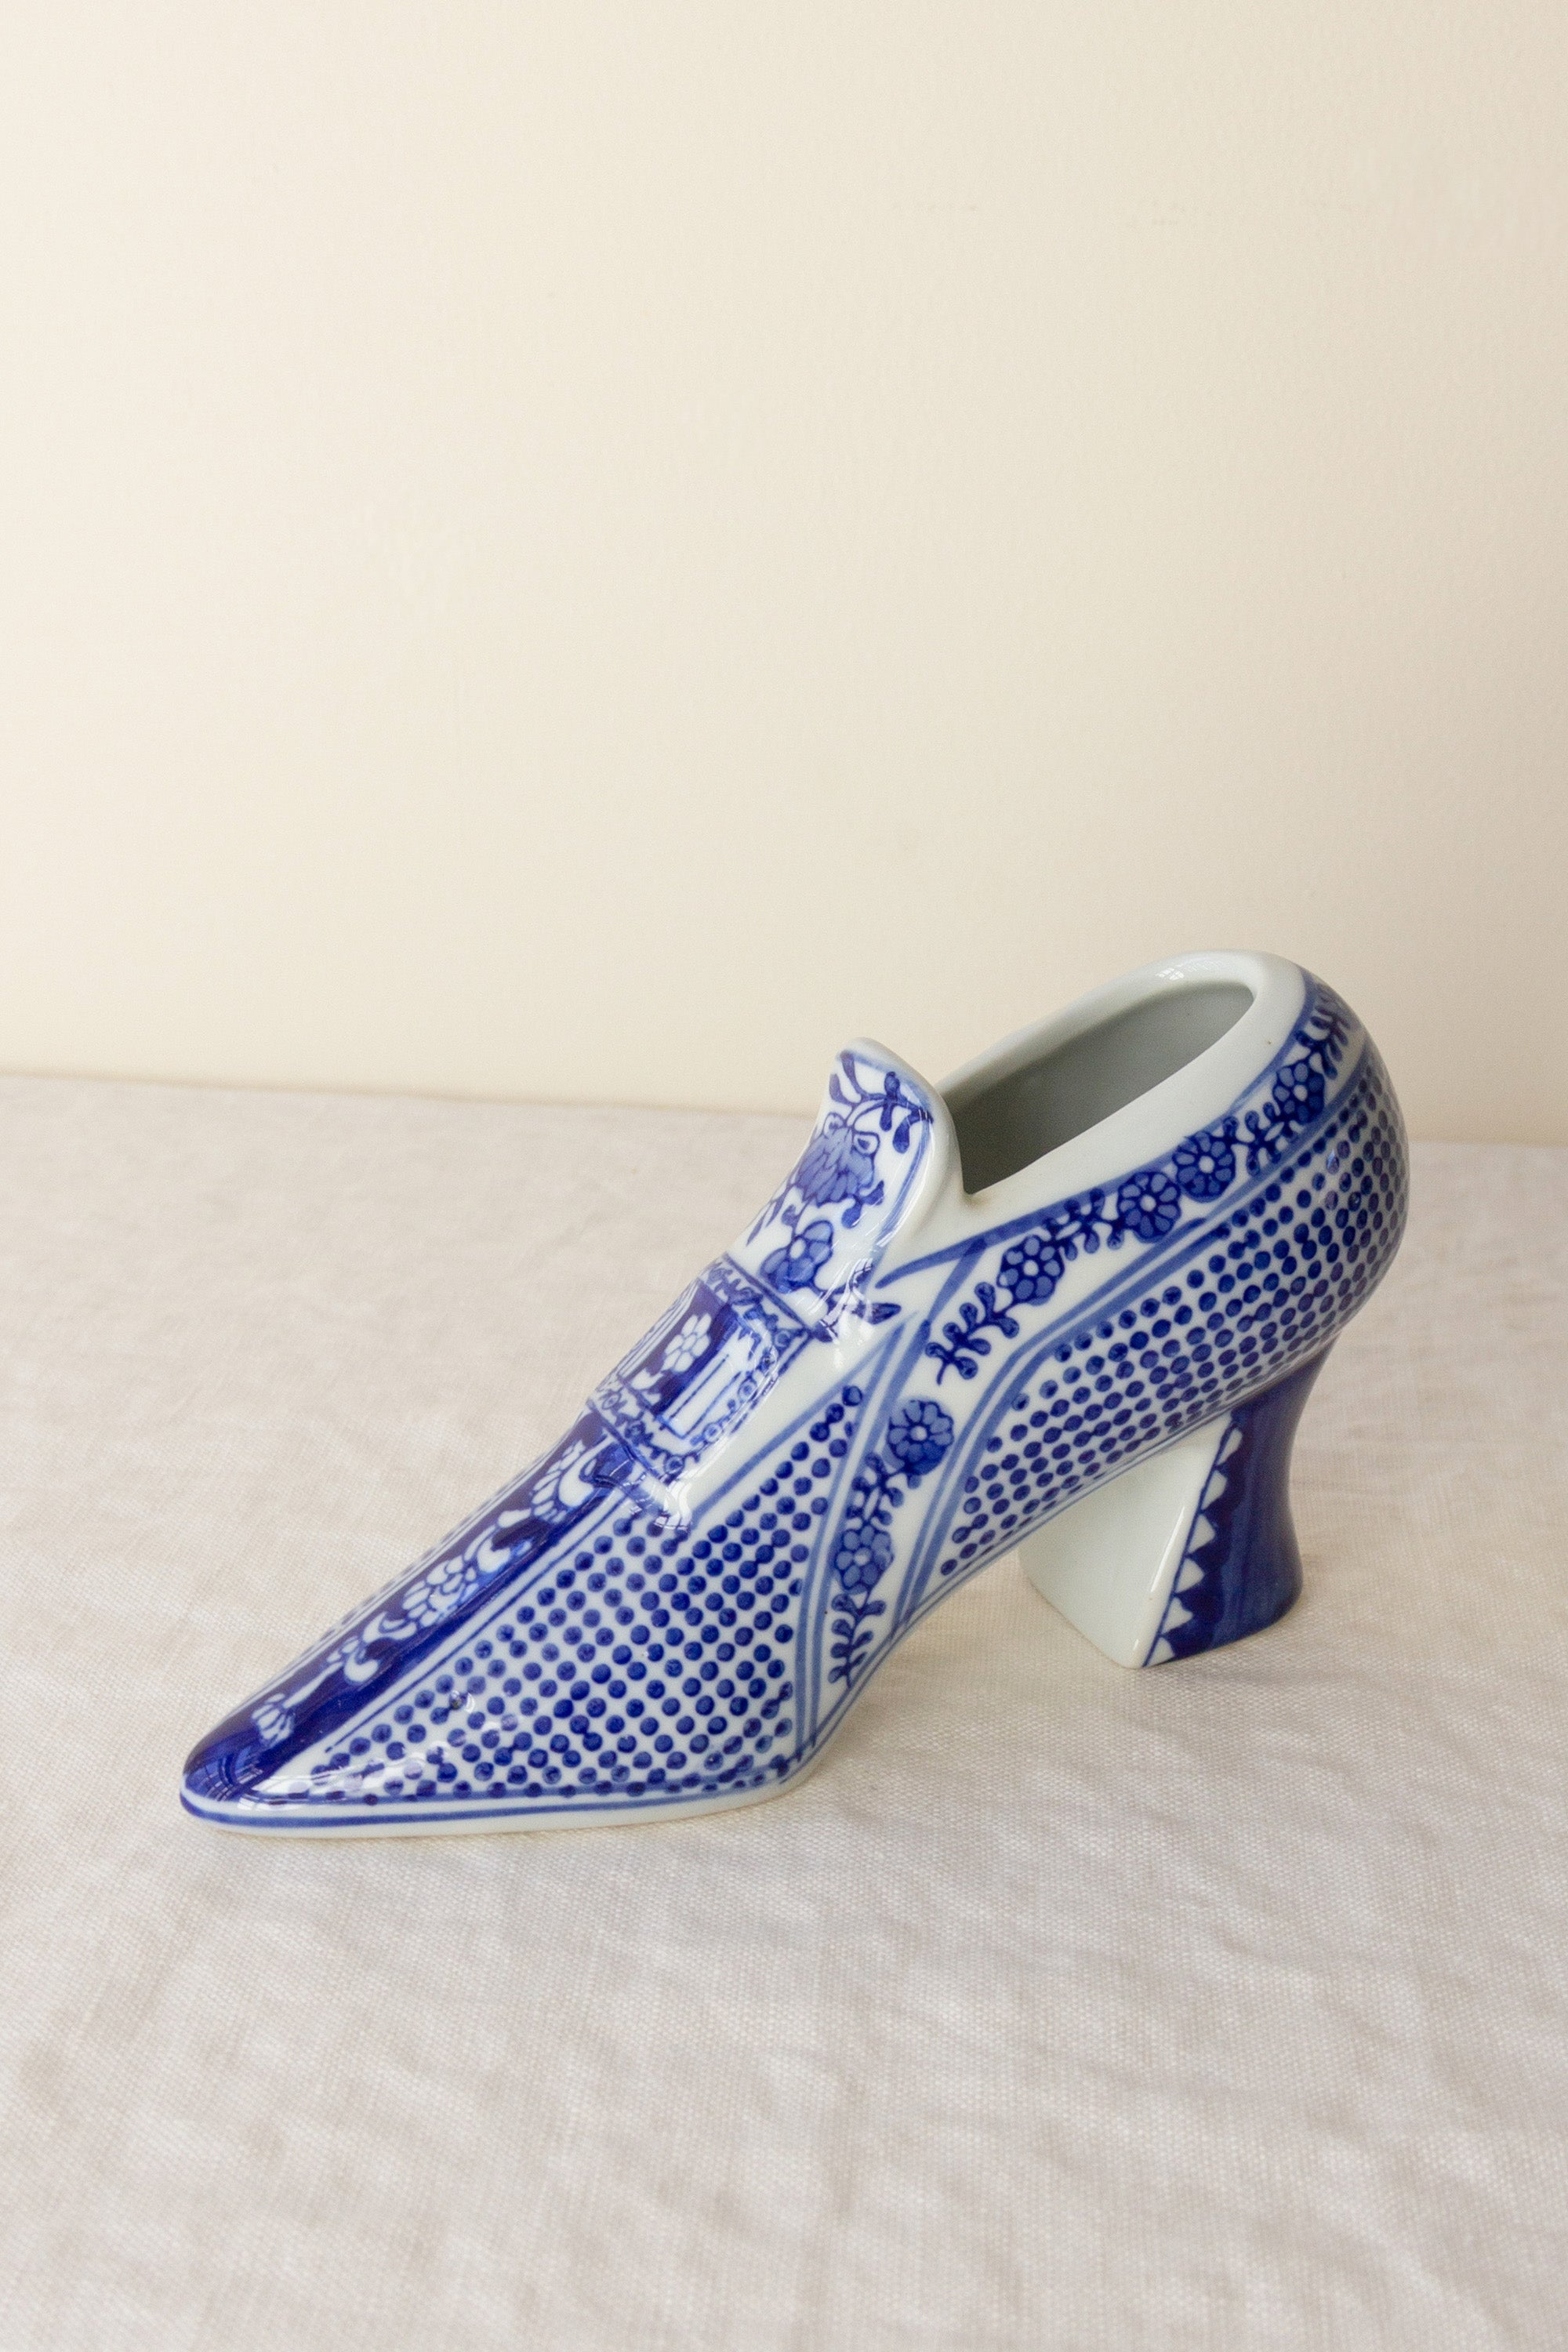 Porcelain Chinoiserie Shoe